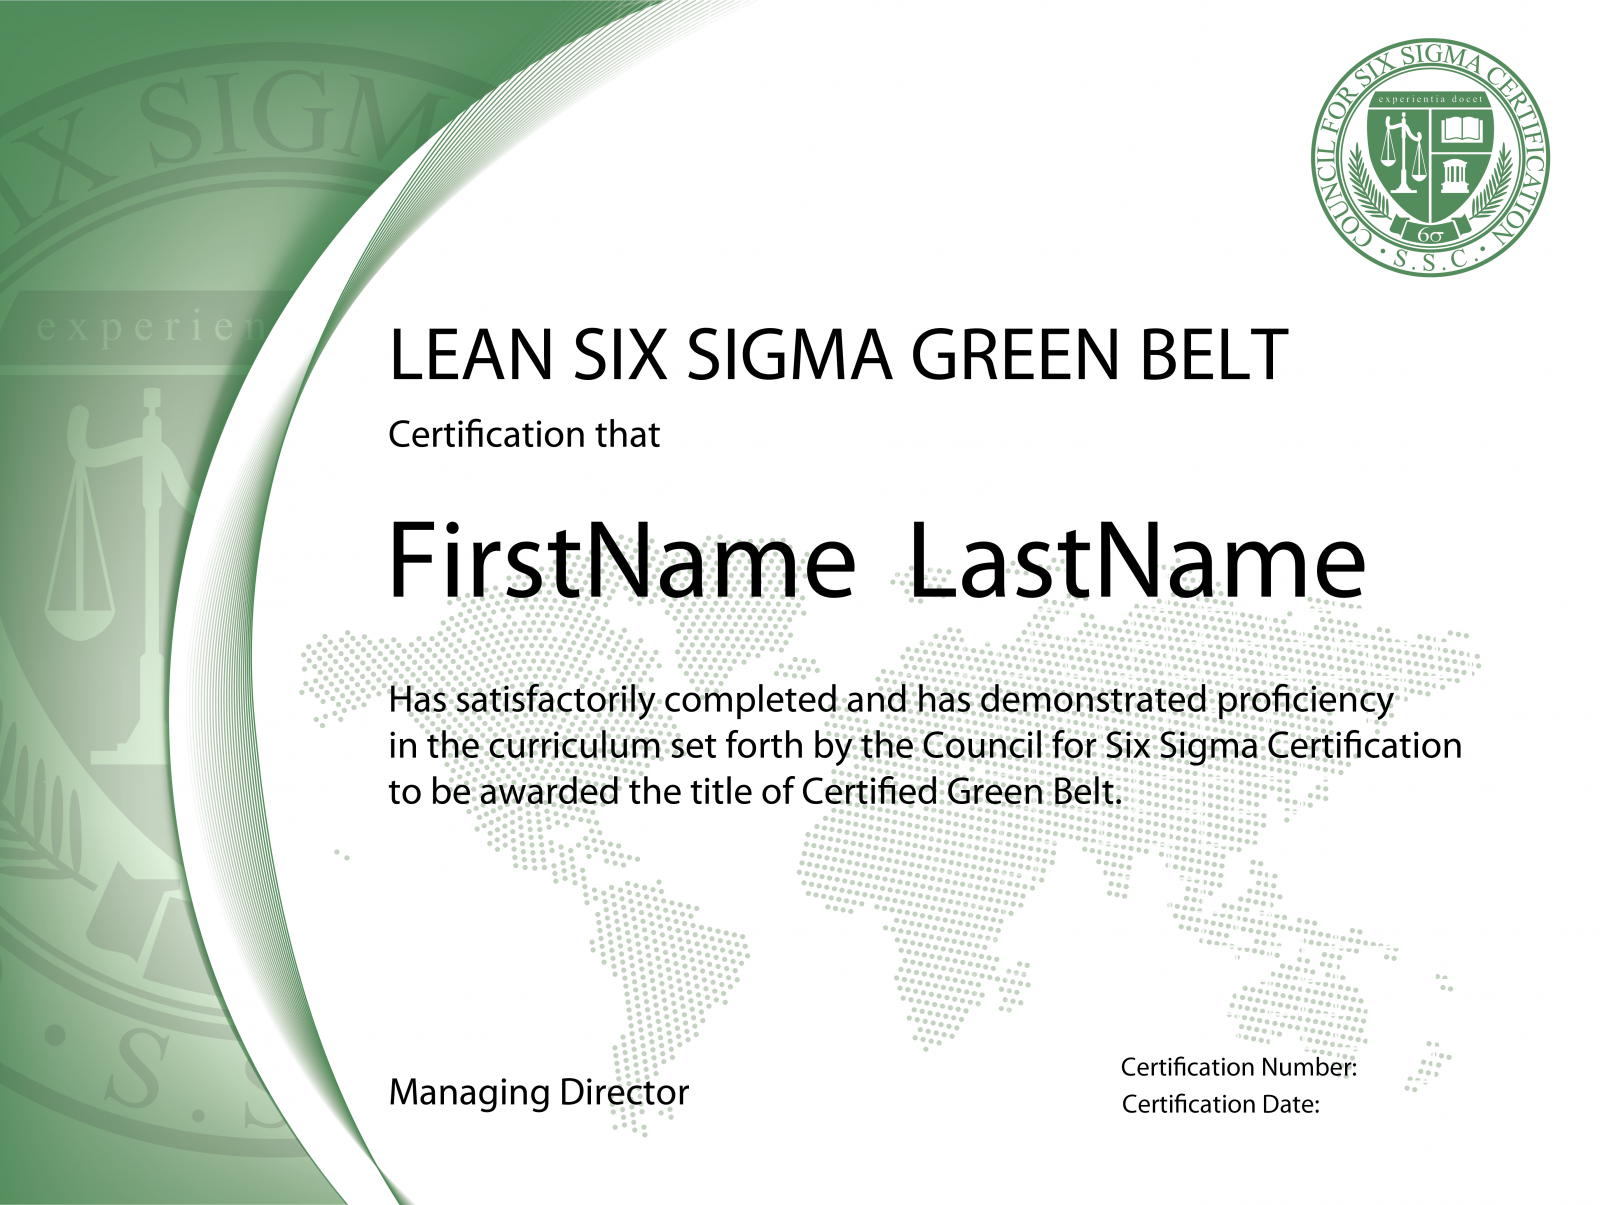 Lean Six Sigma Green Belt Certification The Council For Six Sigma